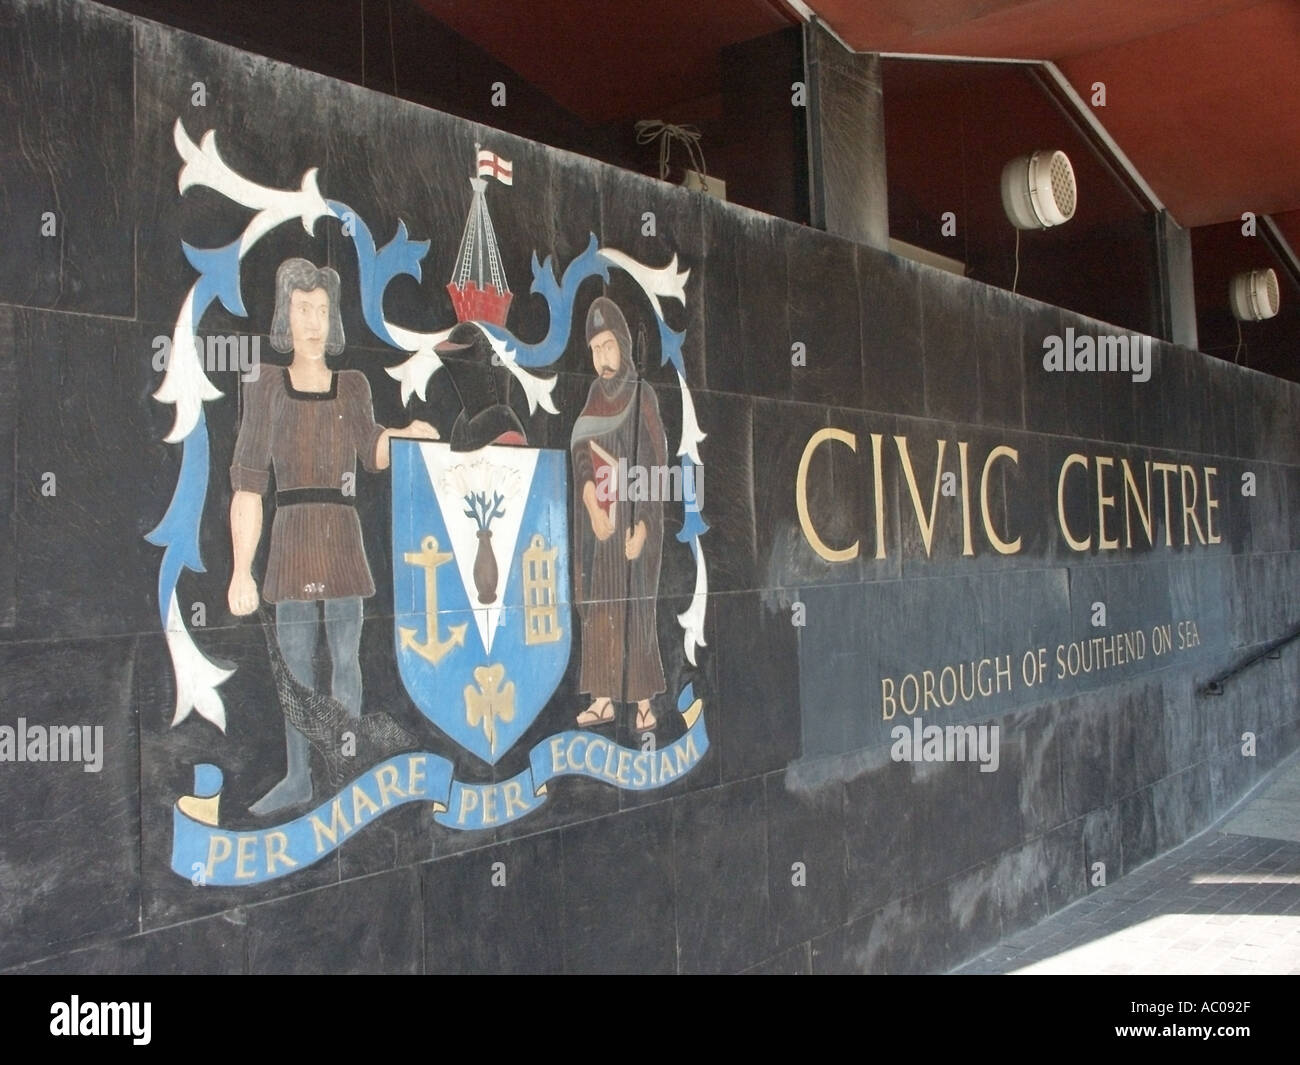 Southend on Sea Essex part of the civic centre area of this unitary authority and borough coat of arms and signs - Stock Image